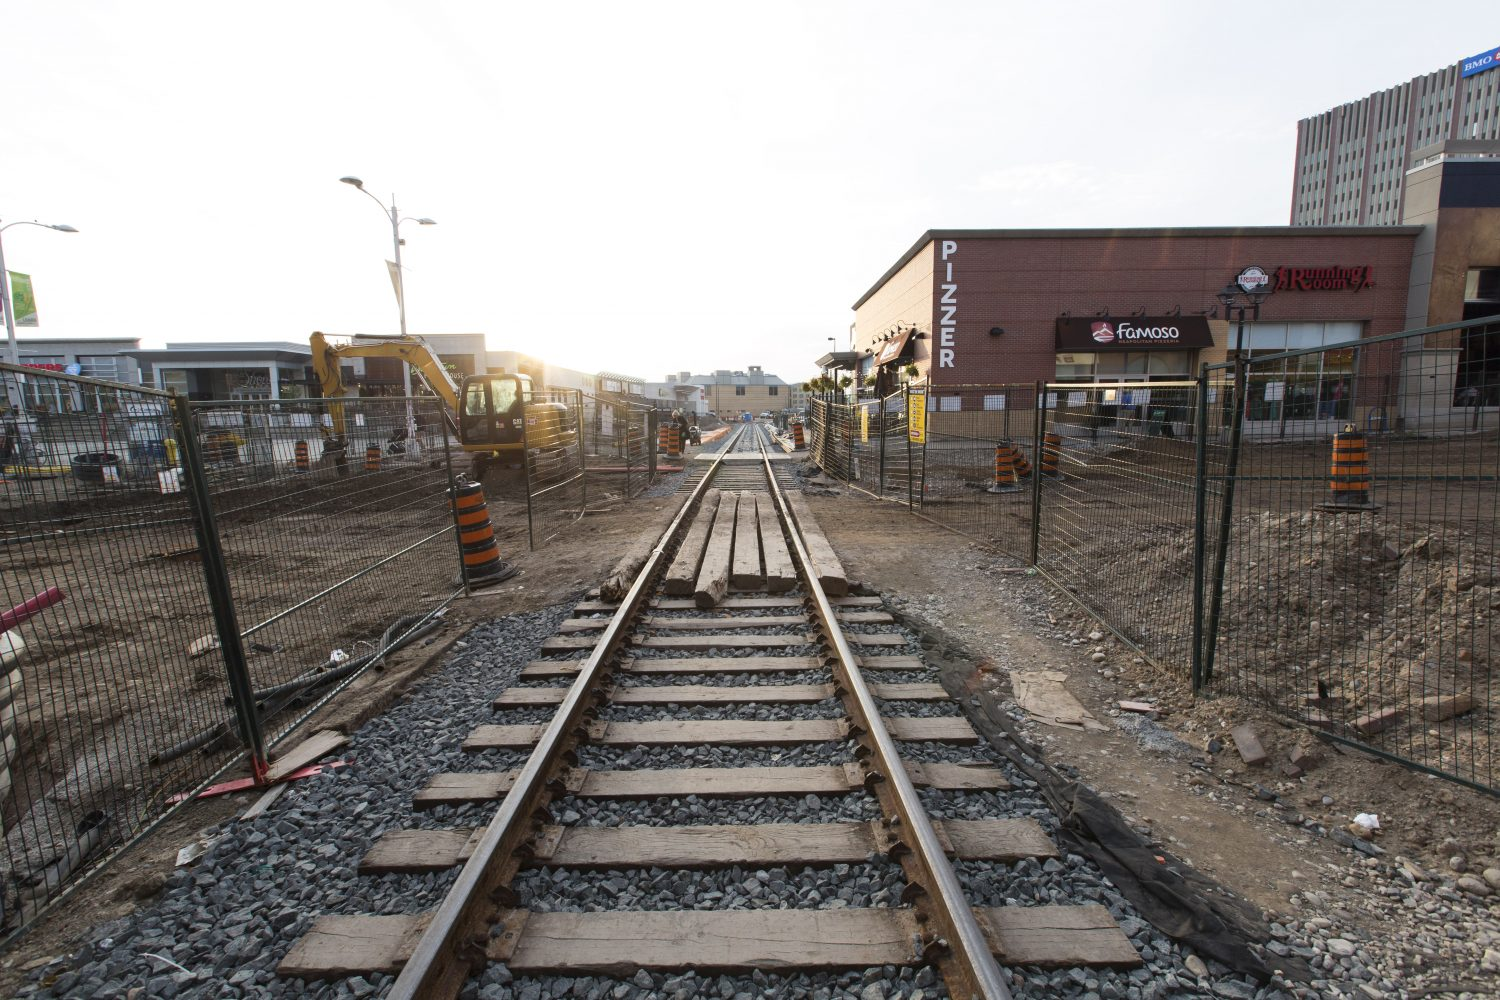 Uptown Waterloo said to re-open to two-way traffic by end of November